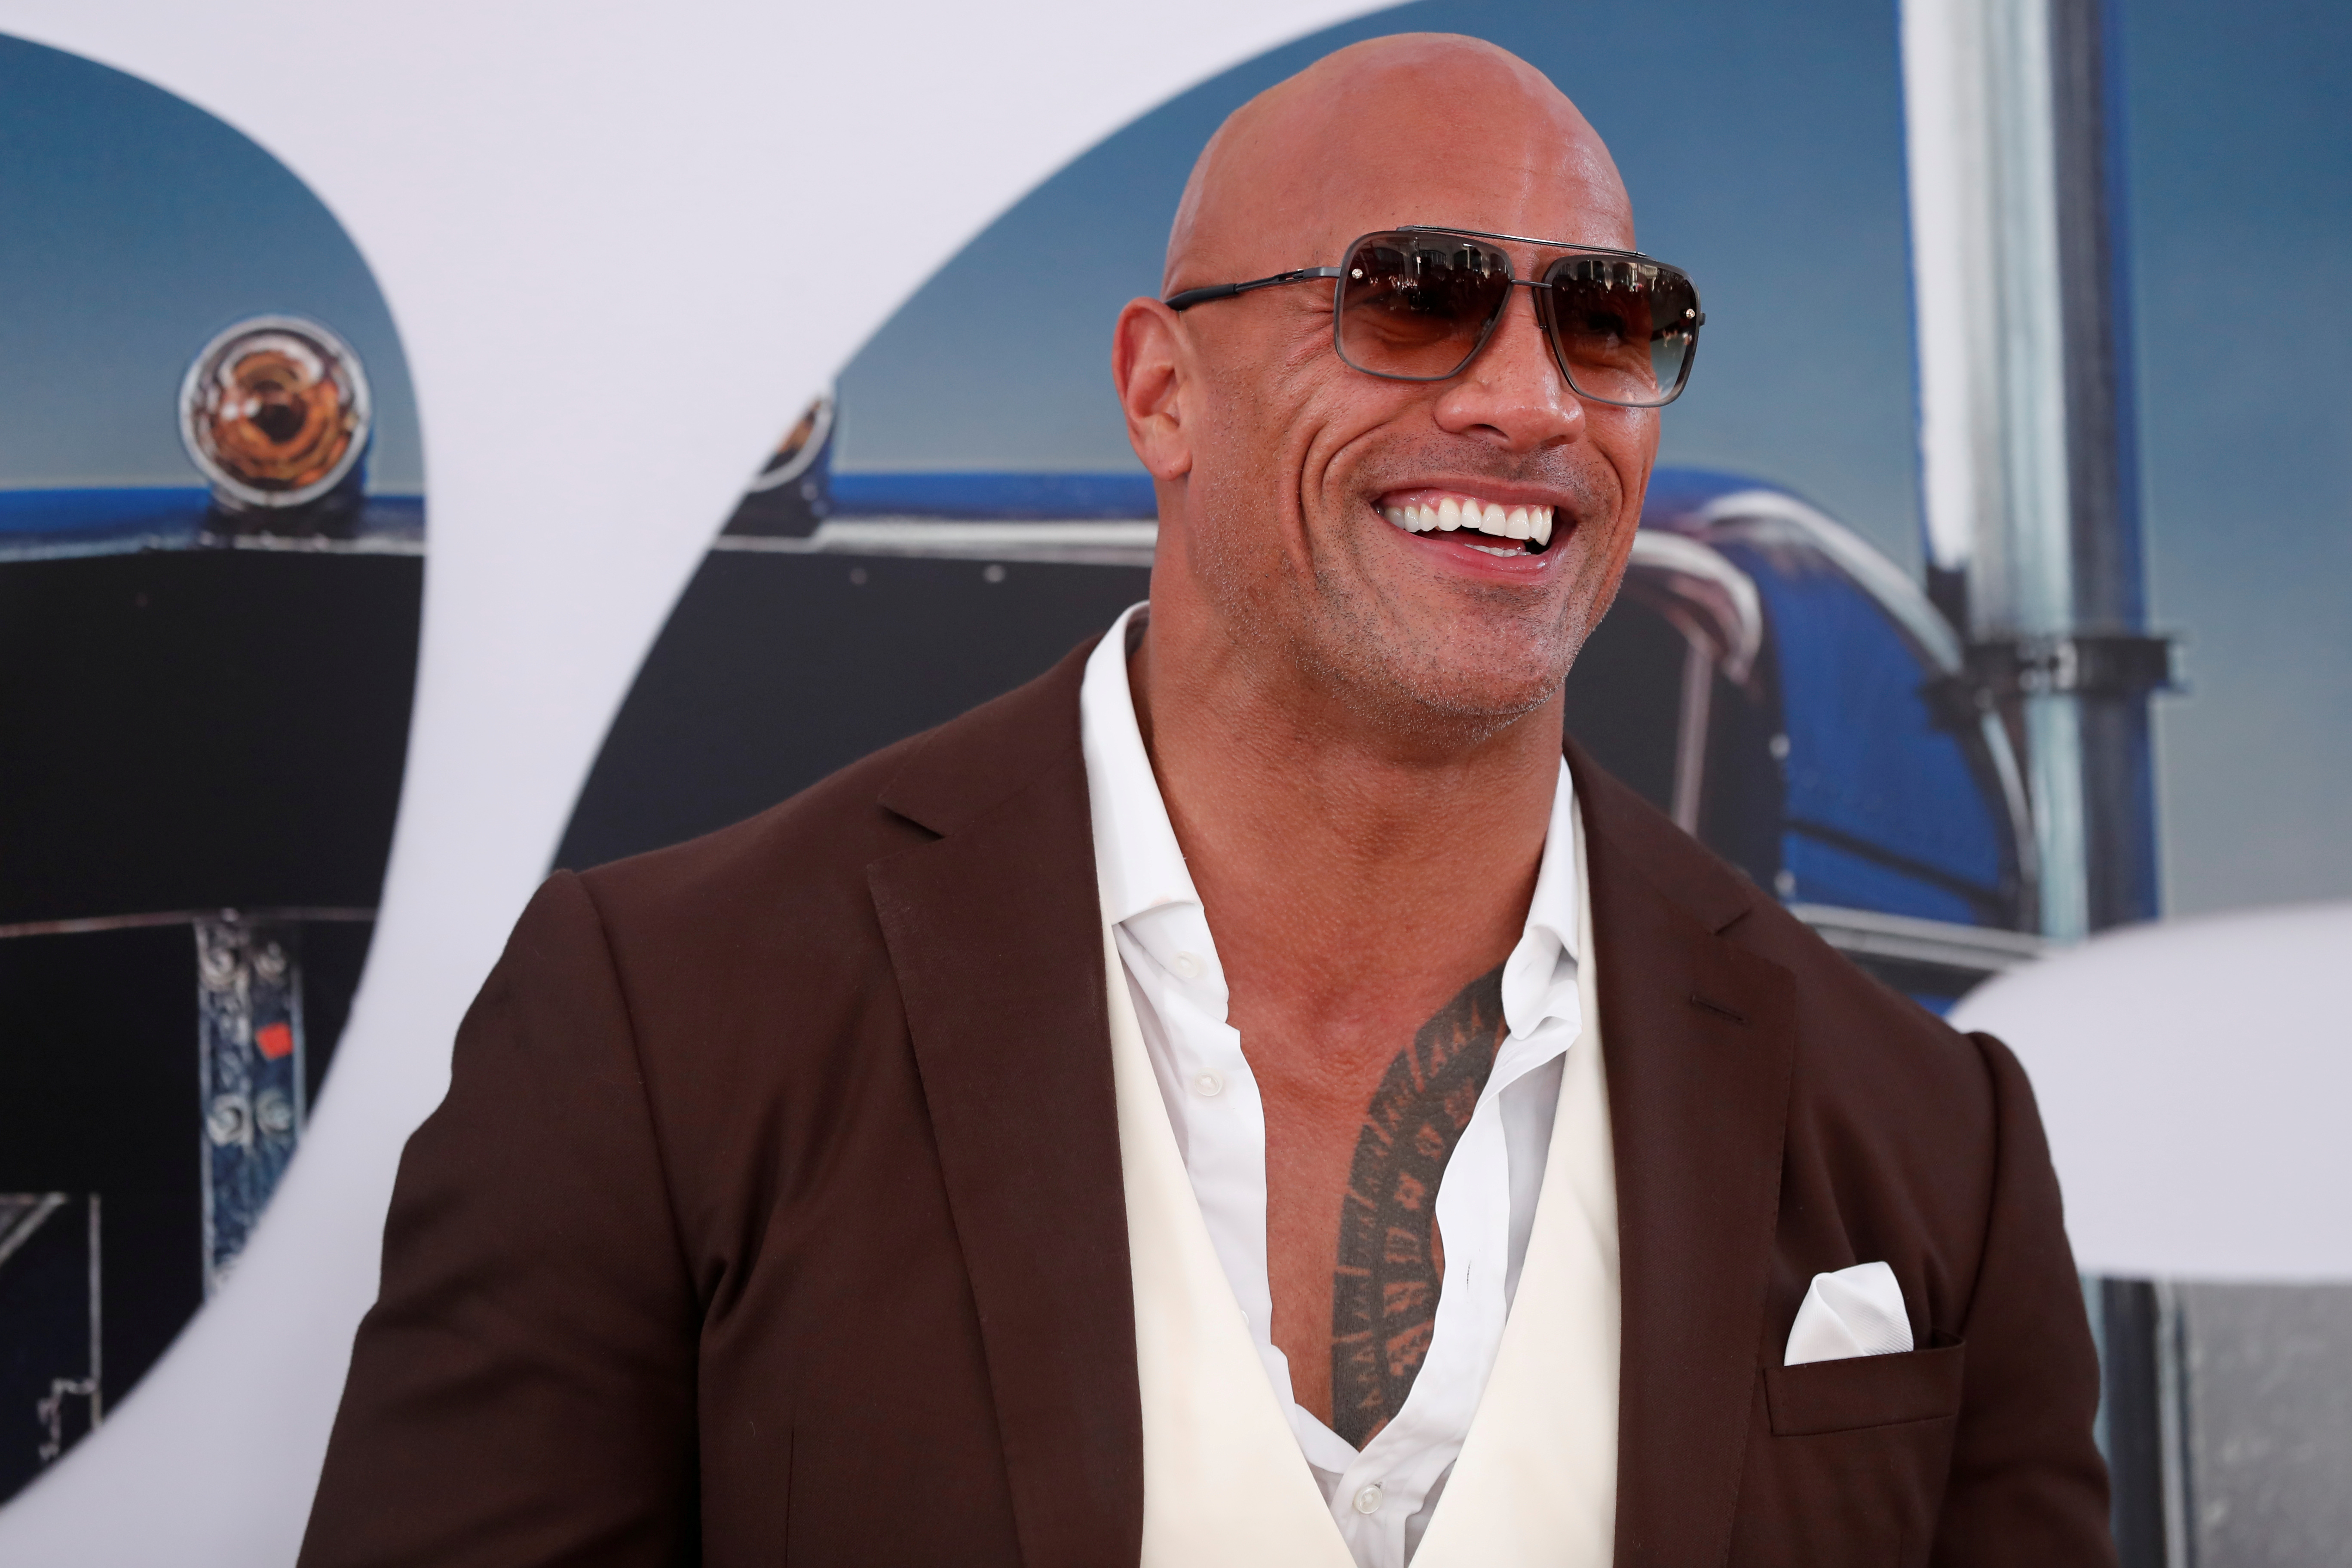 Cast member and producer Dwayne Johnson poses at the premiere for